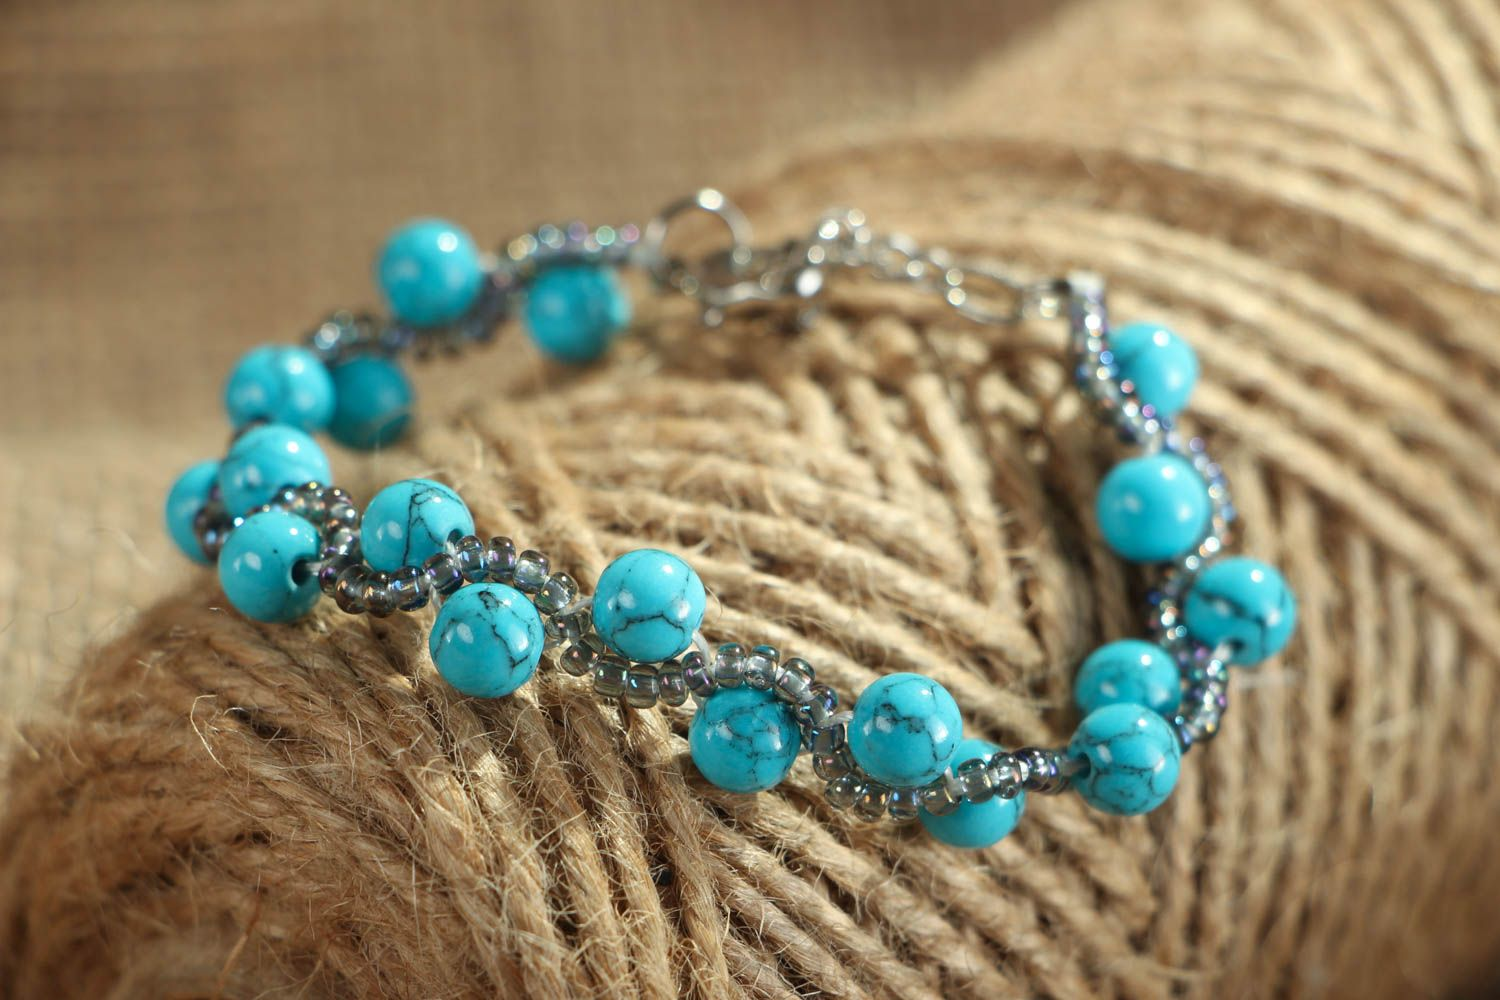 Bracelet with turquoise stone photo 4